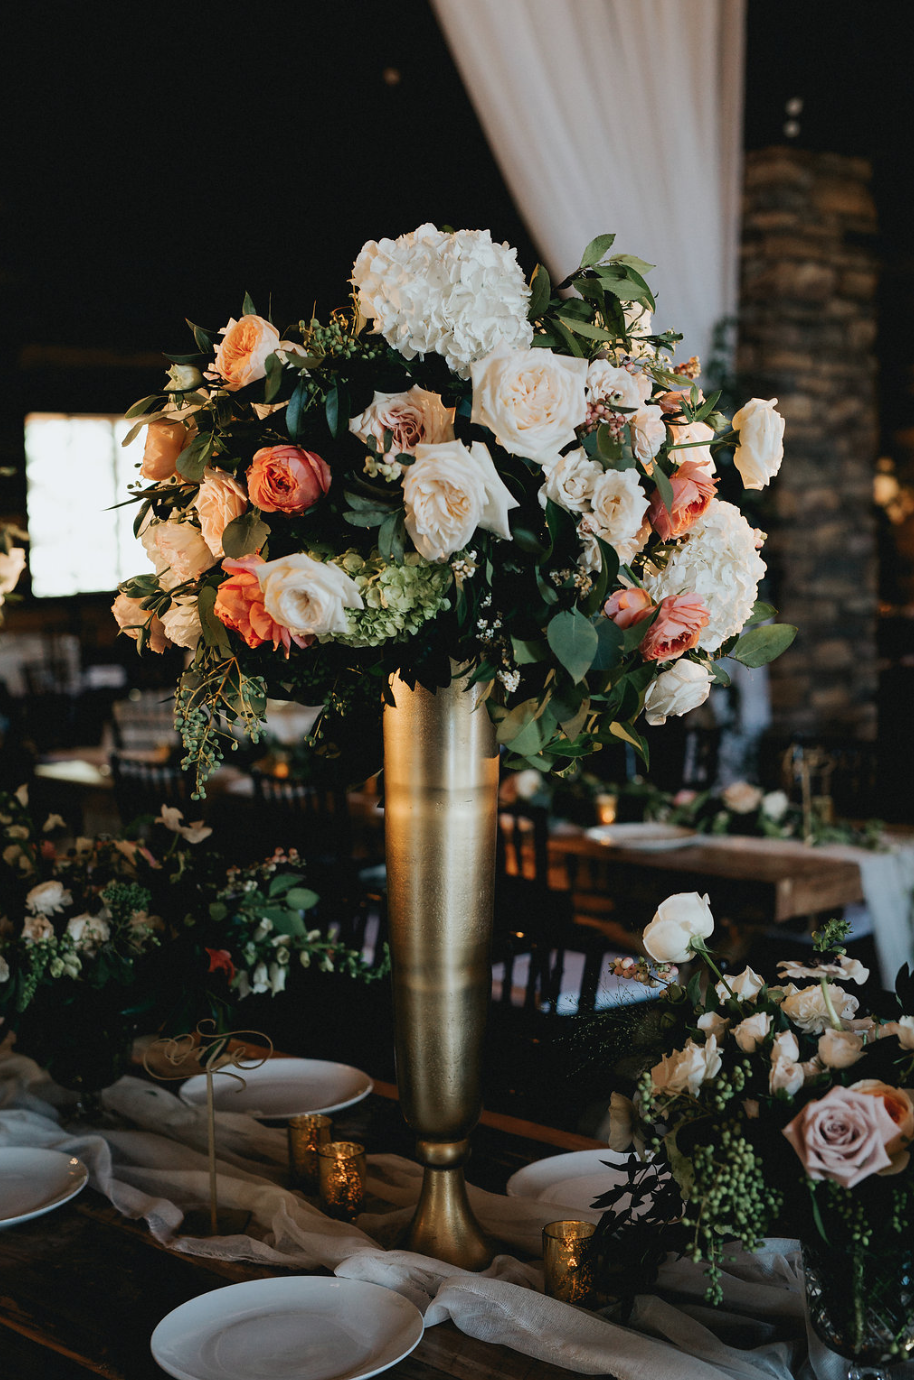 Tall centerpiece and small floral arrangements by Maxit Flower Design in Houston, TX